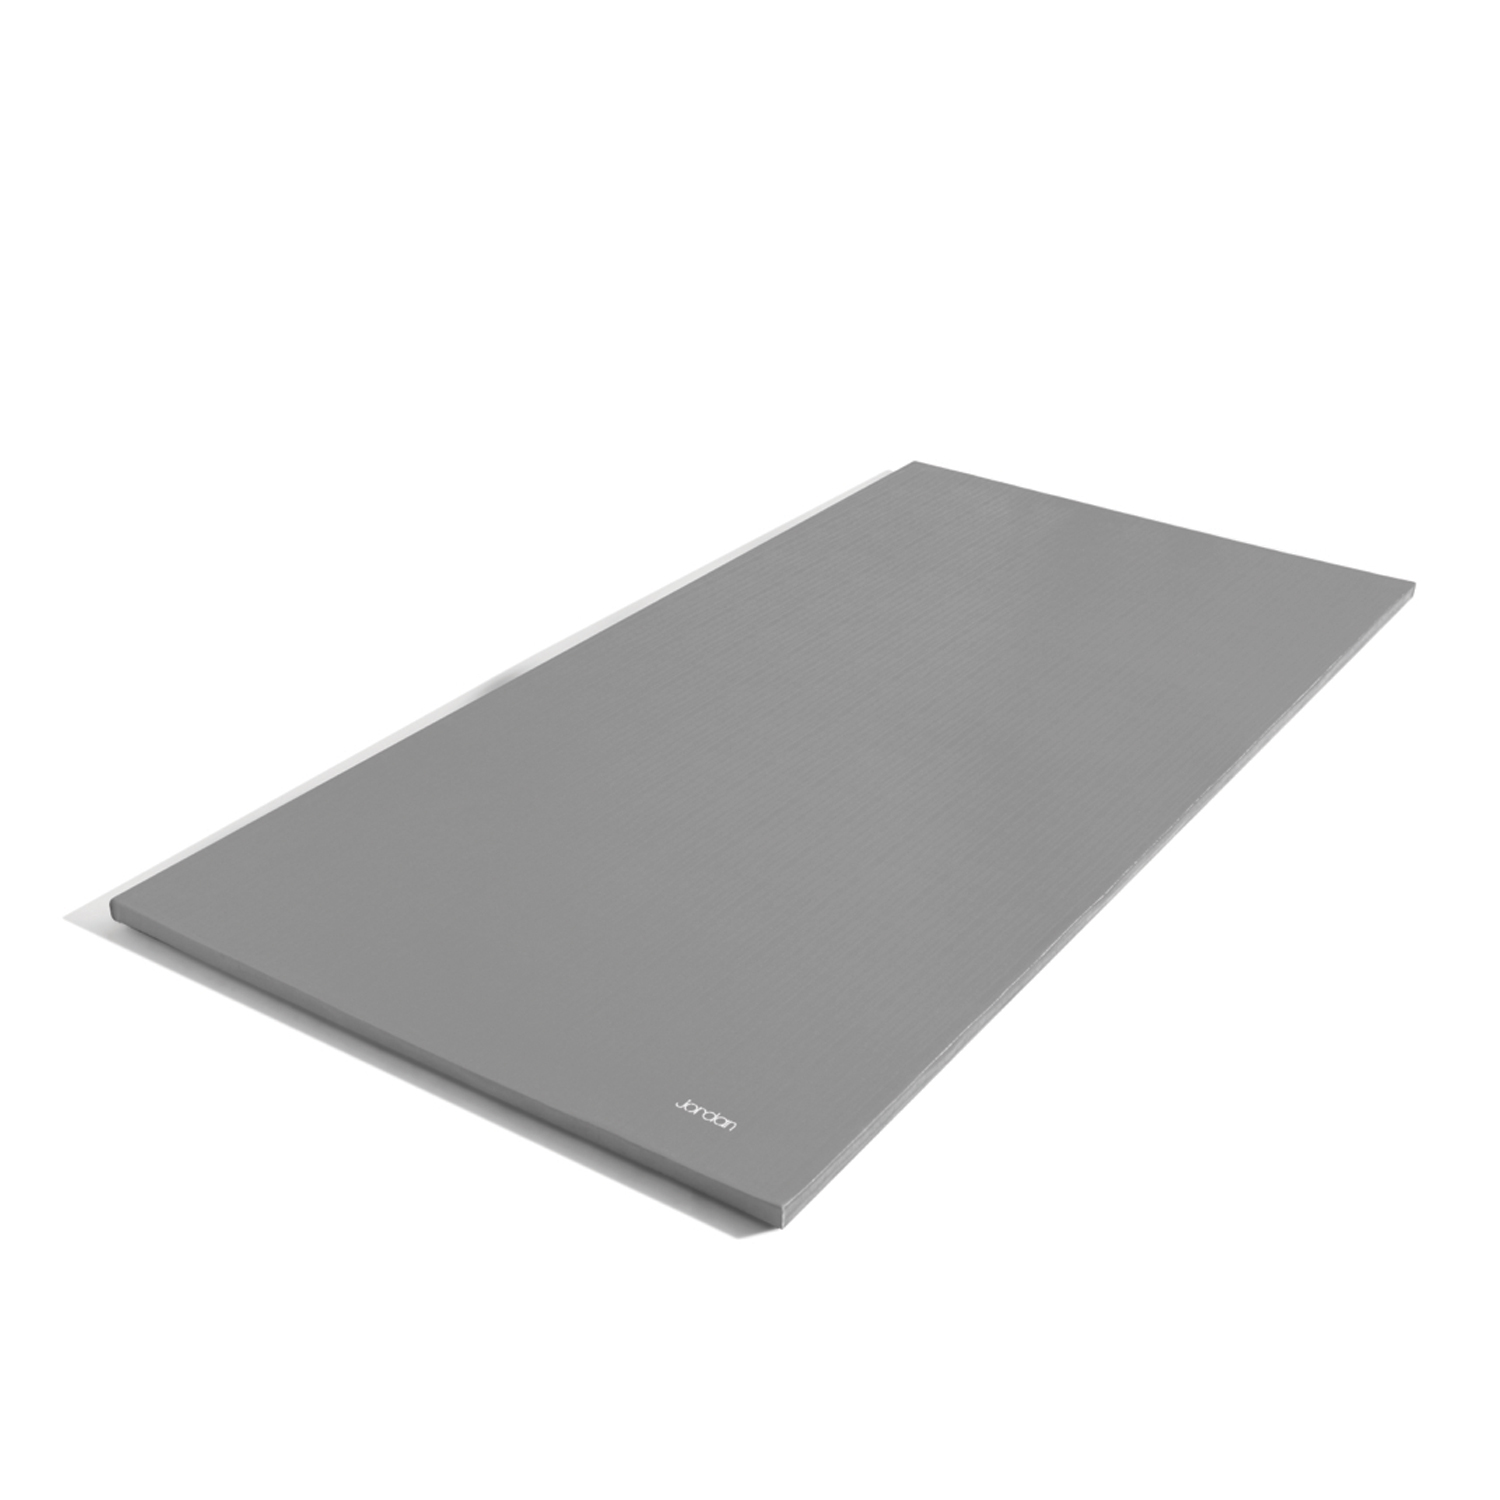 40mm Multi Purpose Stretch Mat Grey